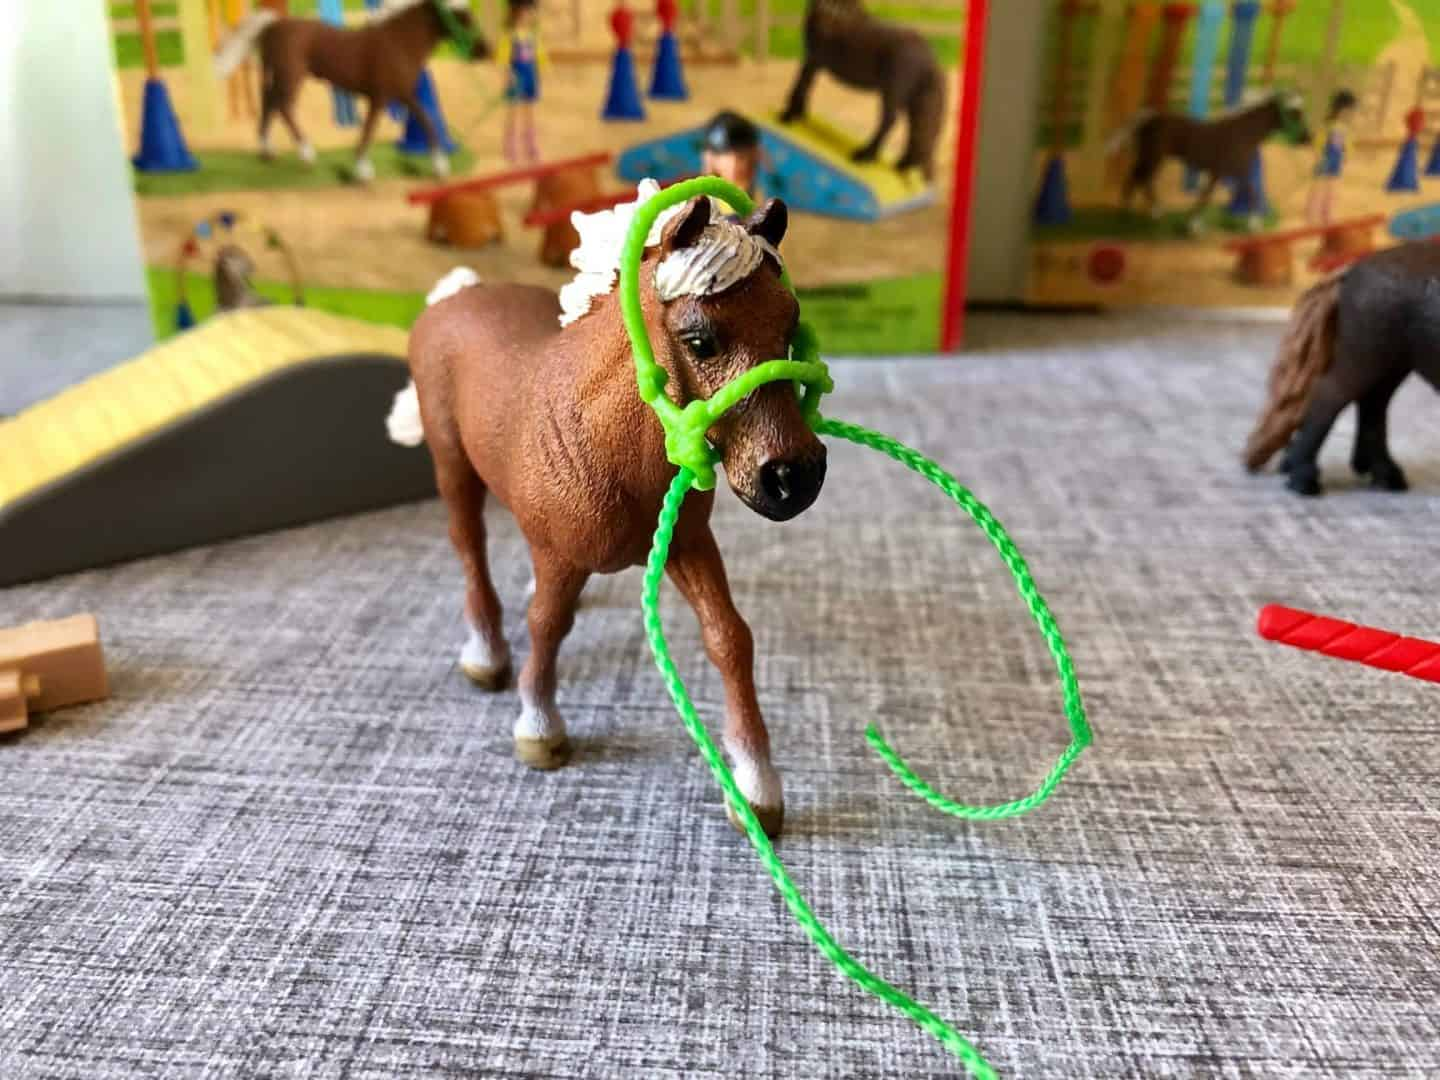 Schleich Pony Agility Training Play Set Review